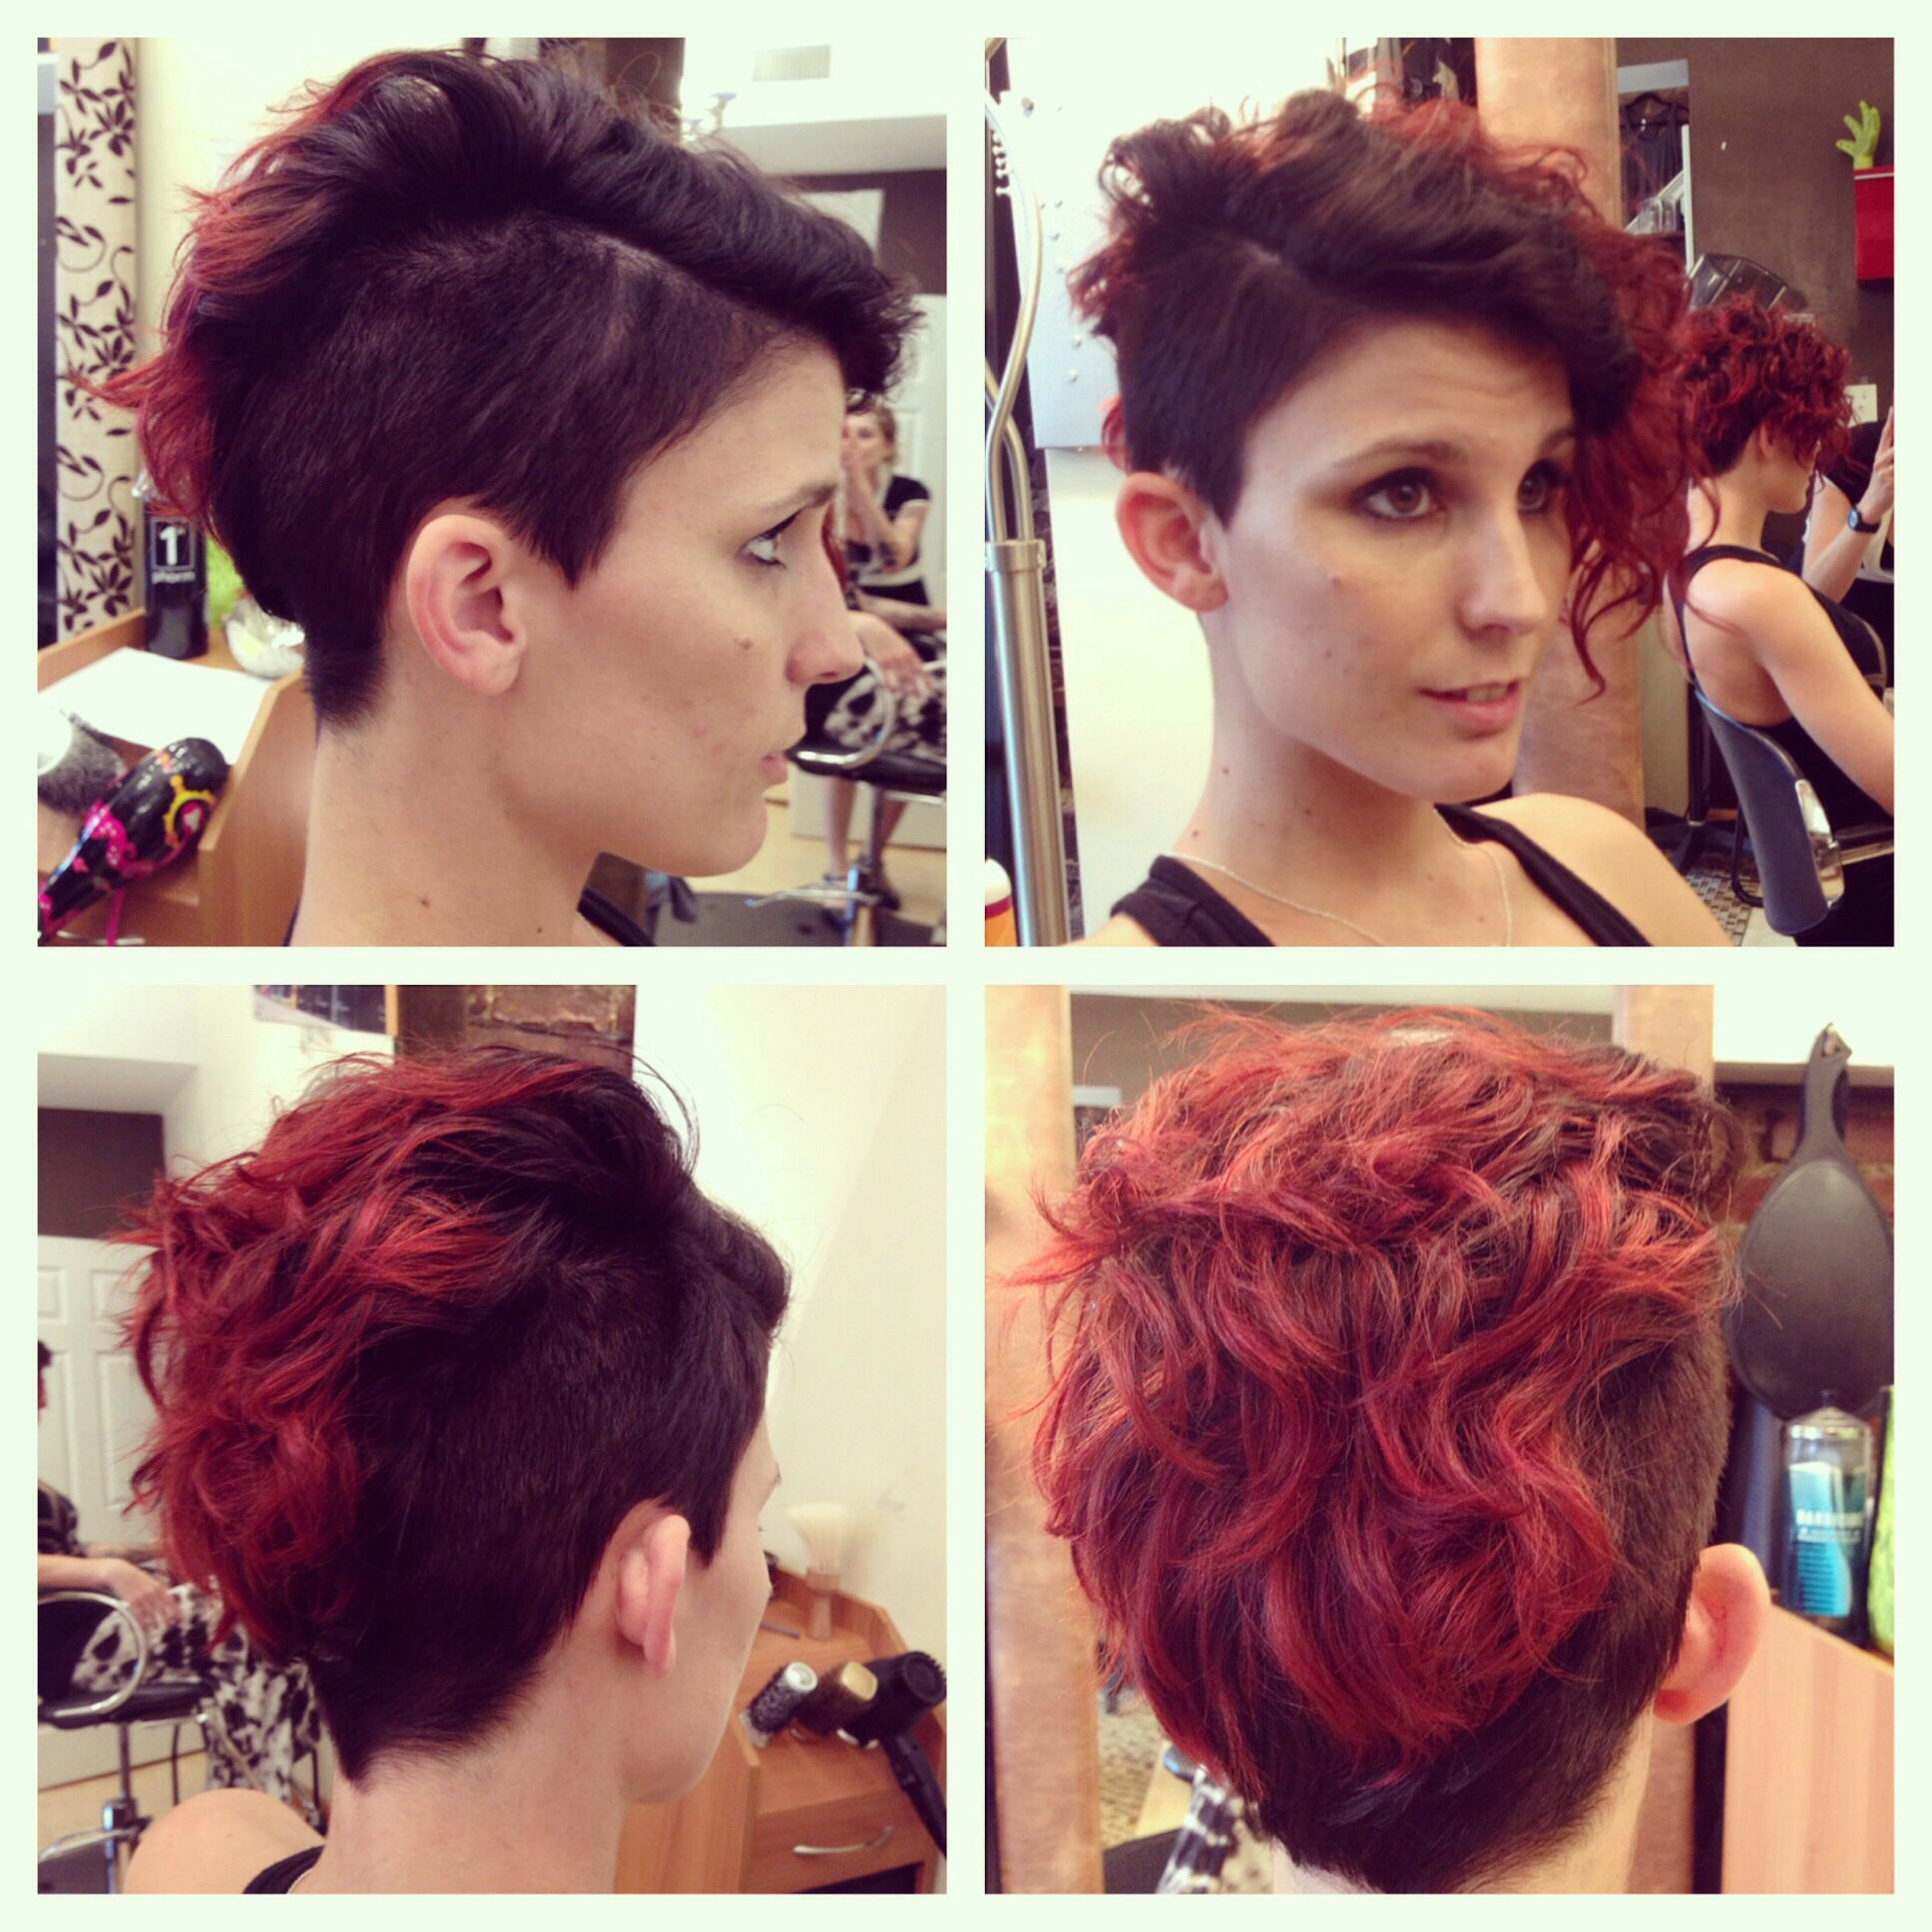 undercut pixie cut shaved sides, naturally curly pixie